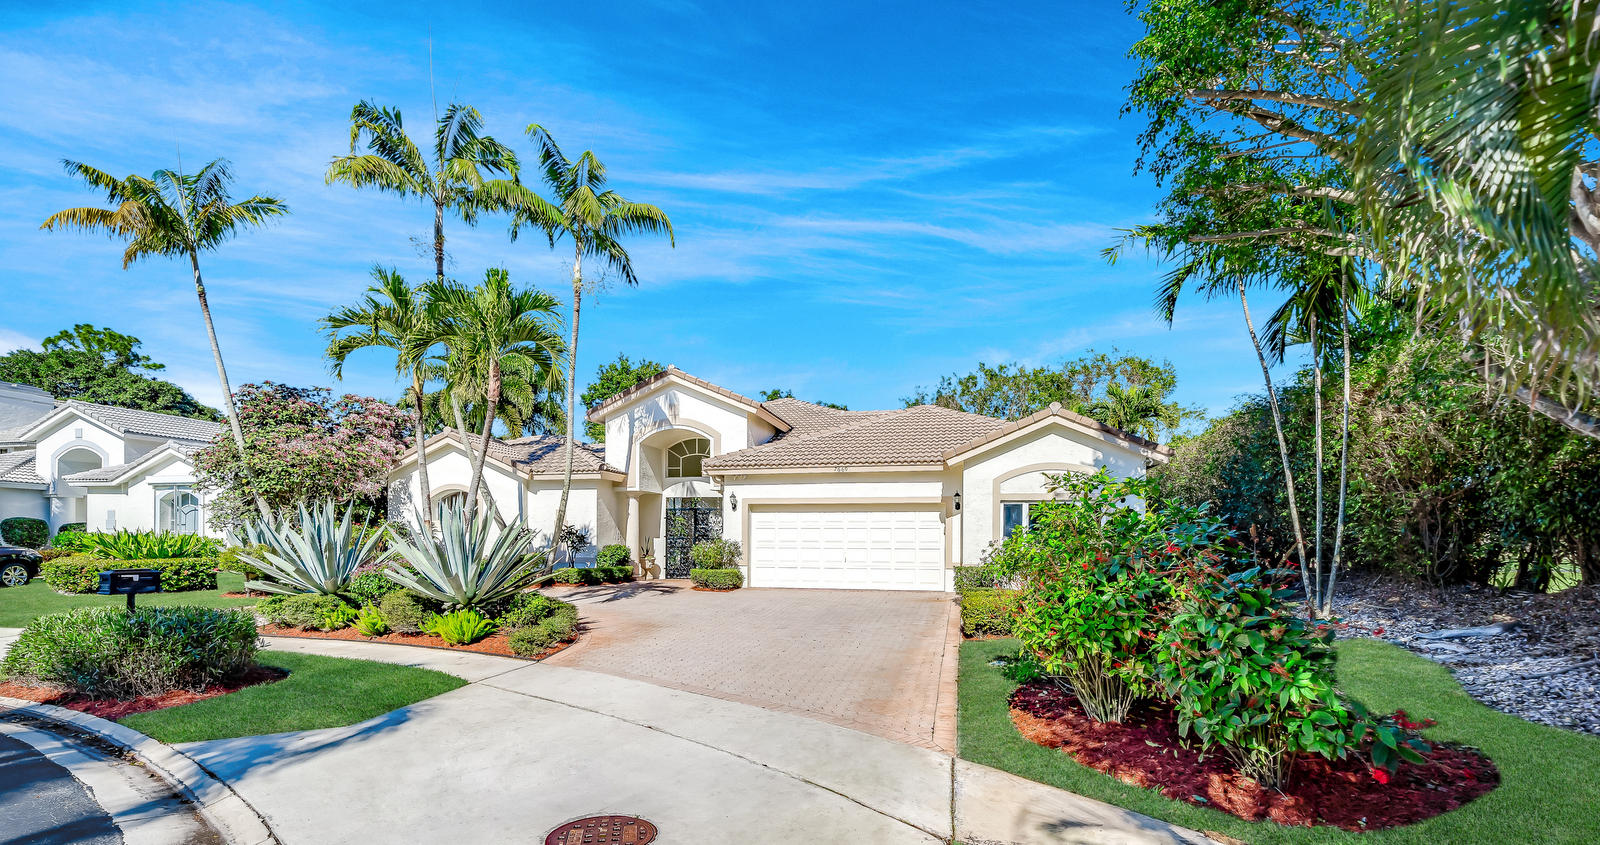 Home for sale in Boca Pointe,la Corniche Boca Raton Florida